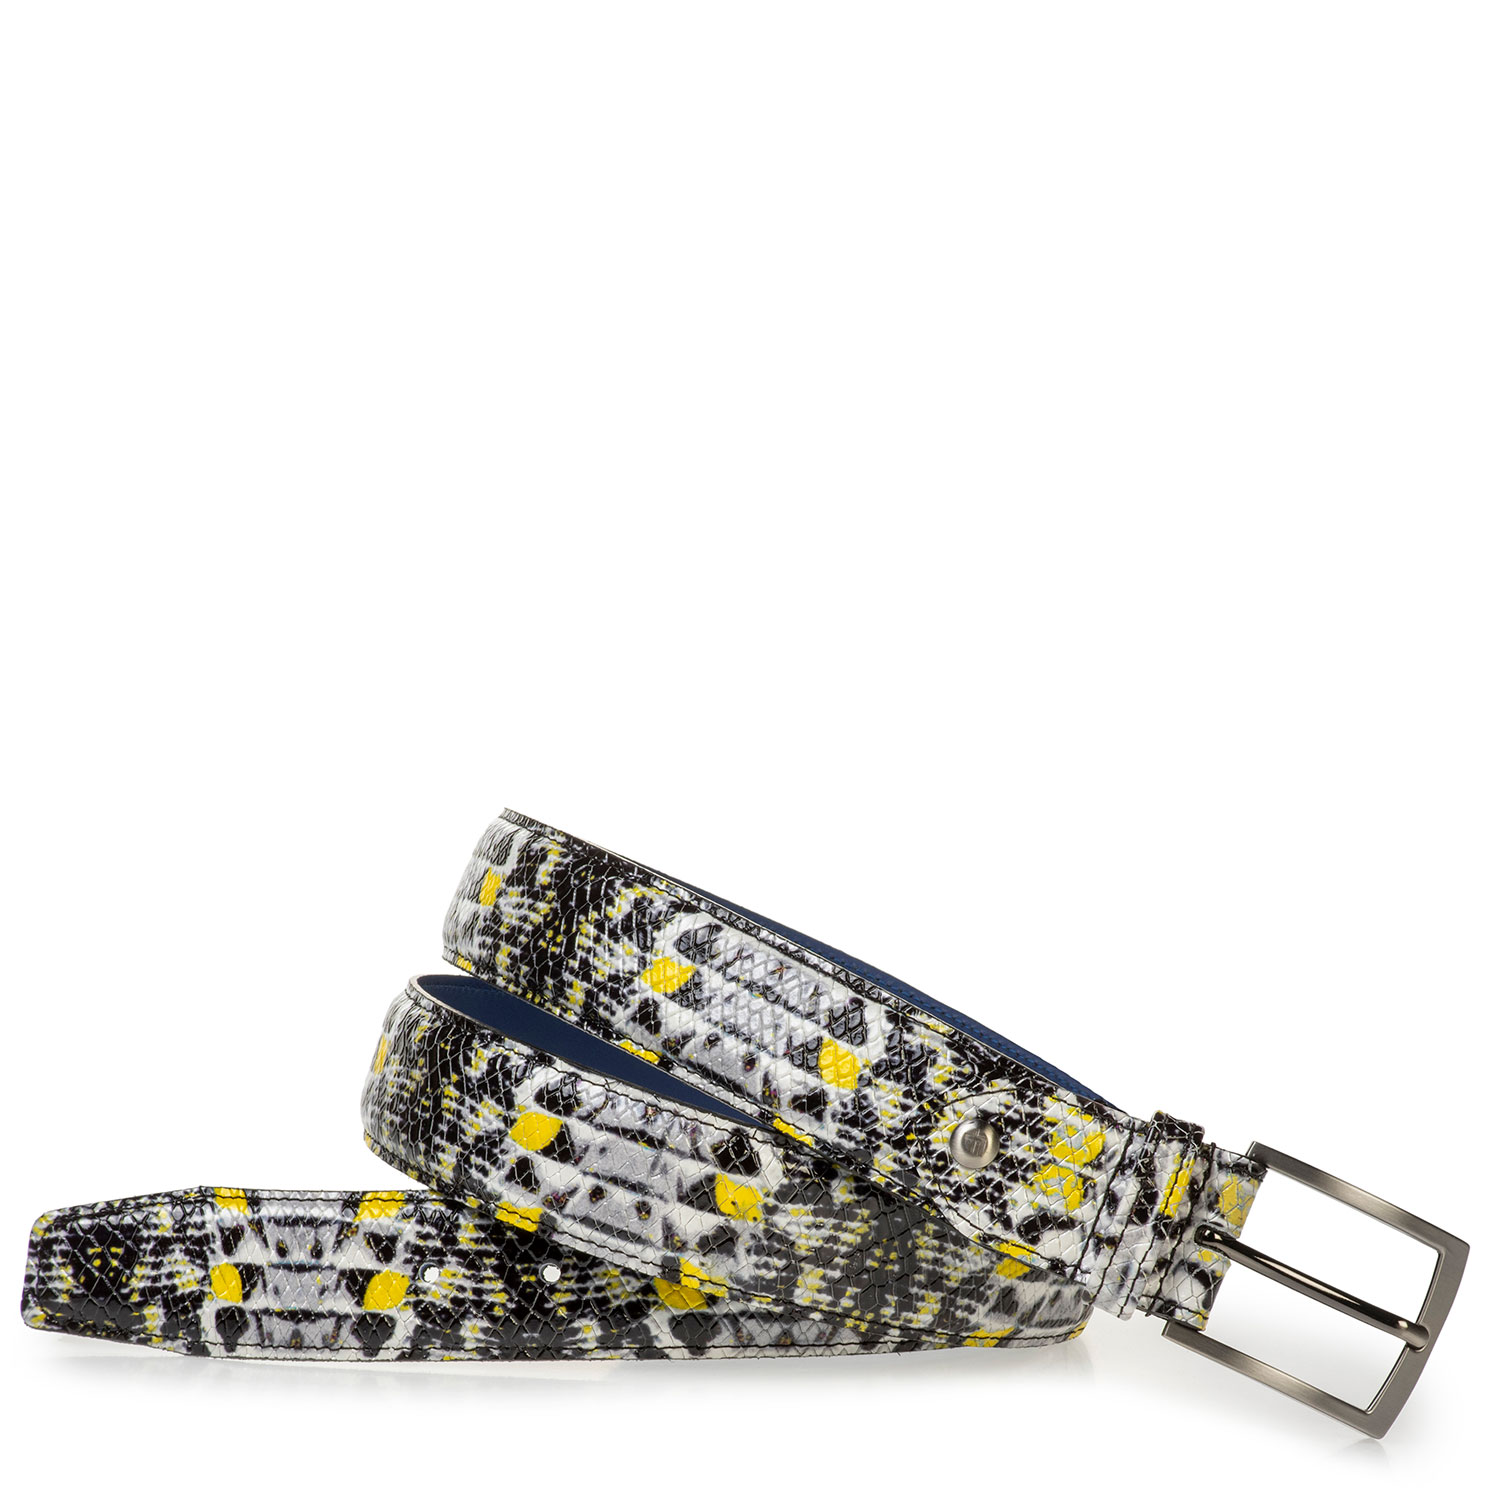 75201/98 - Black and grey patent leather belt with yellow details